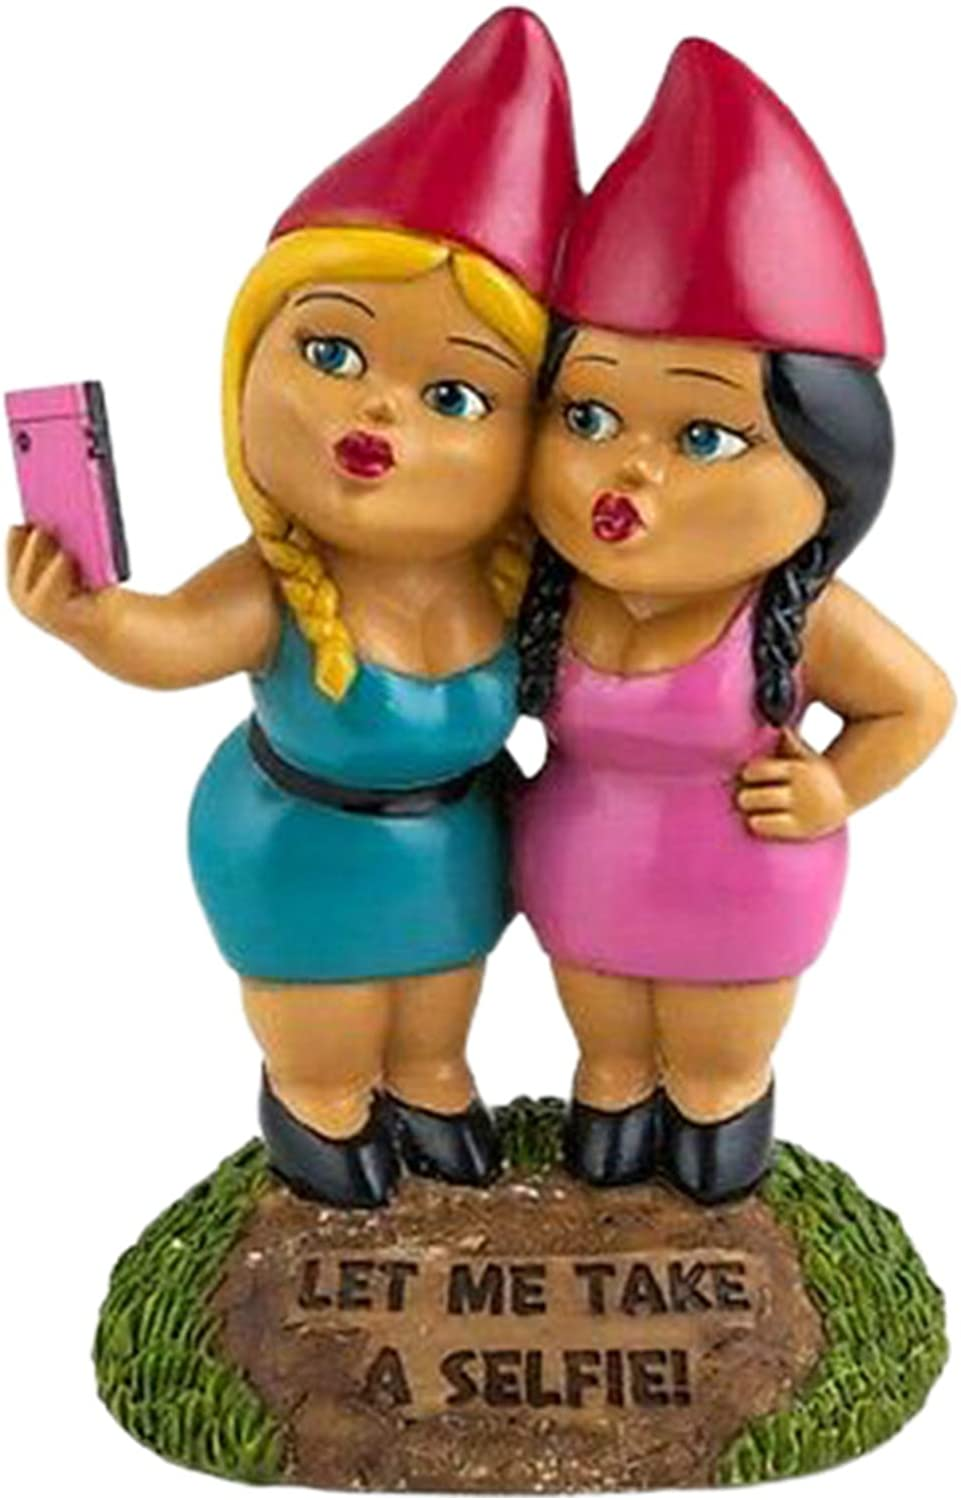 """WEIXIE Christmas Garden Gnome Statue, """"LET ME TAKE A Selfie"""" Two Sisters Model Miniature Doll Figurine for Lawn Ornaments, Indoor or Outdoor Xmas Decorations"""